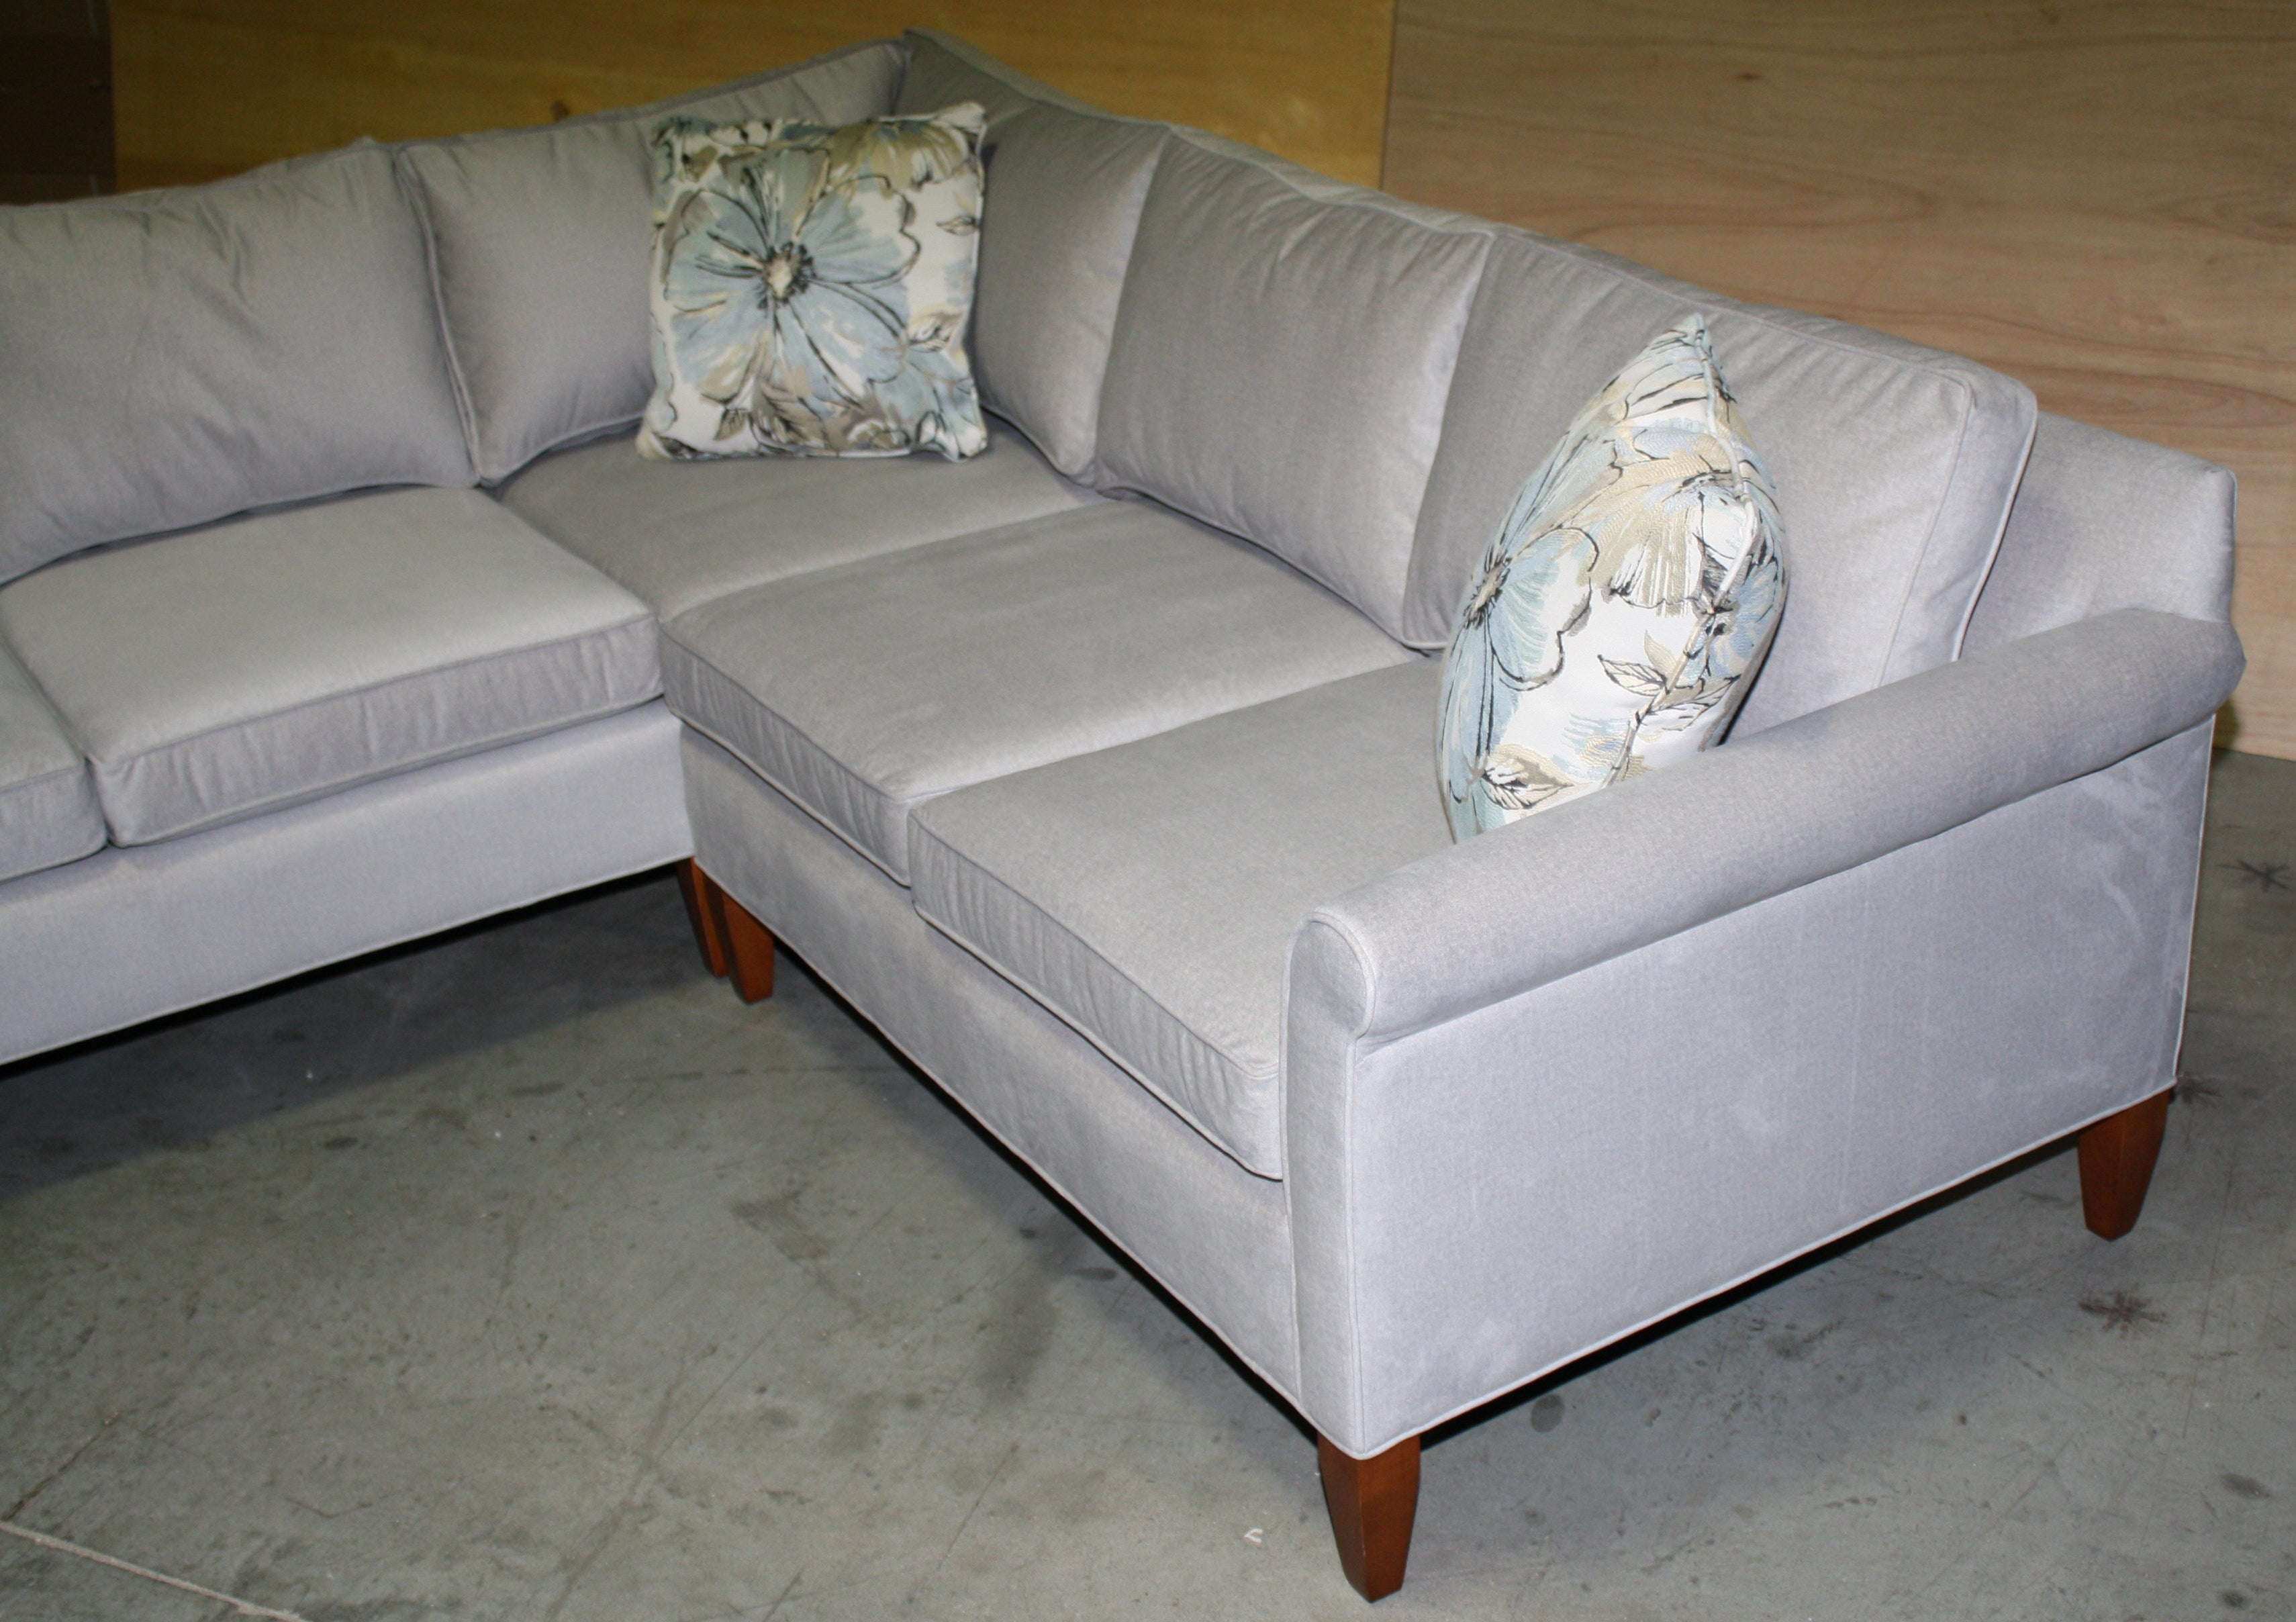 ... Non Toxic Stain Protected Otto Sectional Floor Model At Condofurniture. Com And Endicott Home ...